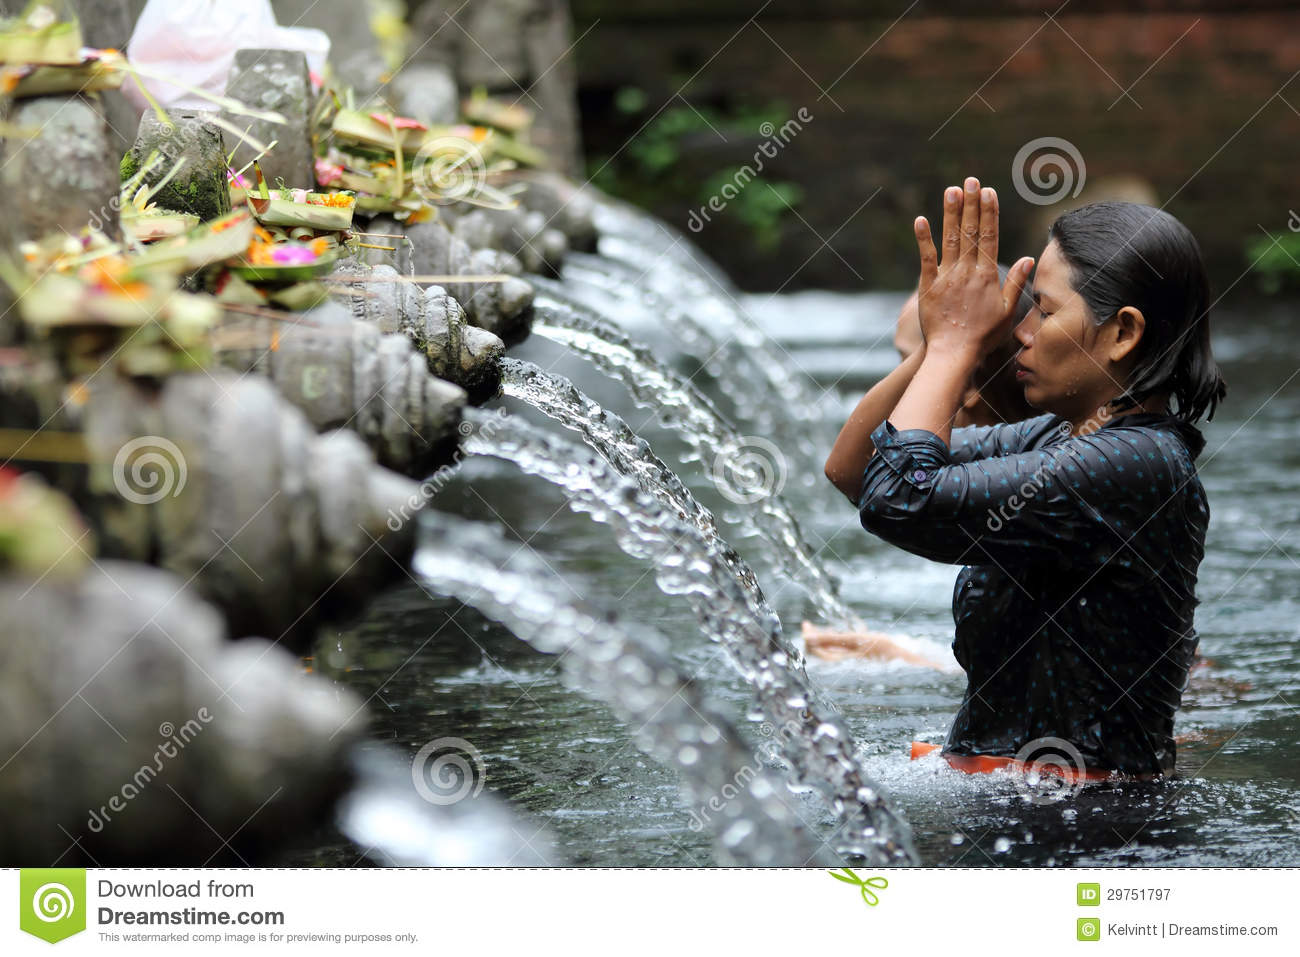 Ritual Bathing at Puru Tirtha Empul, Bali